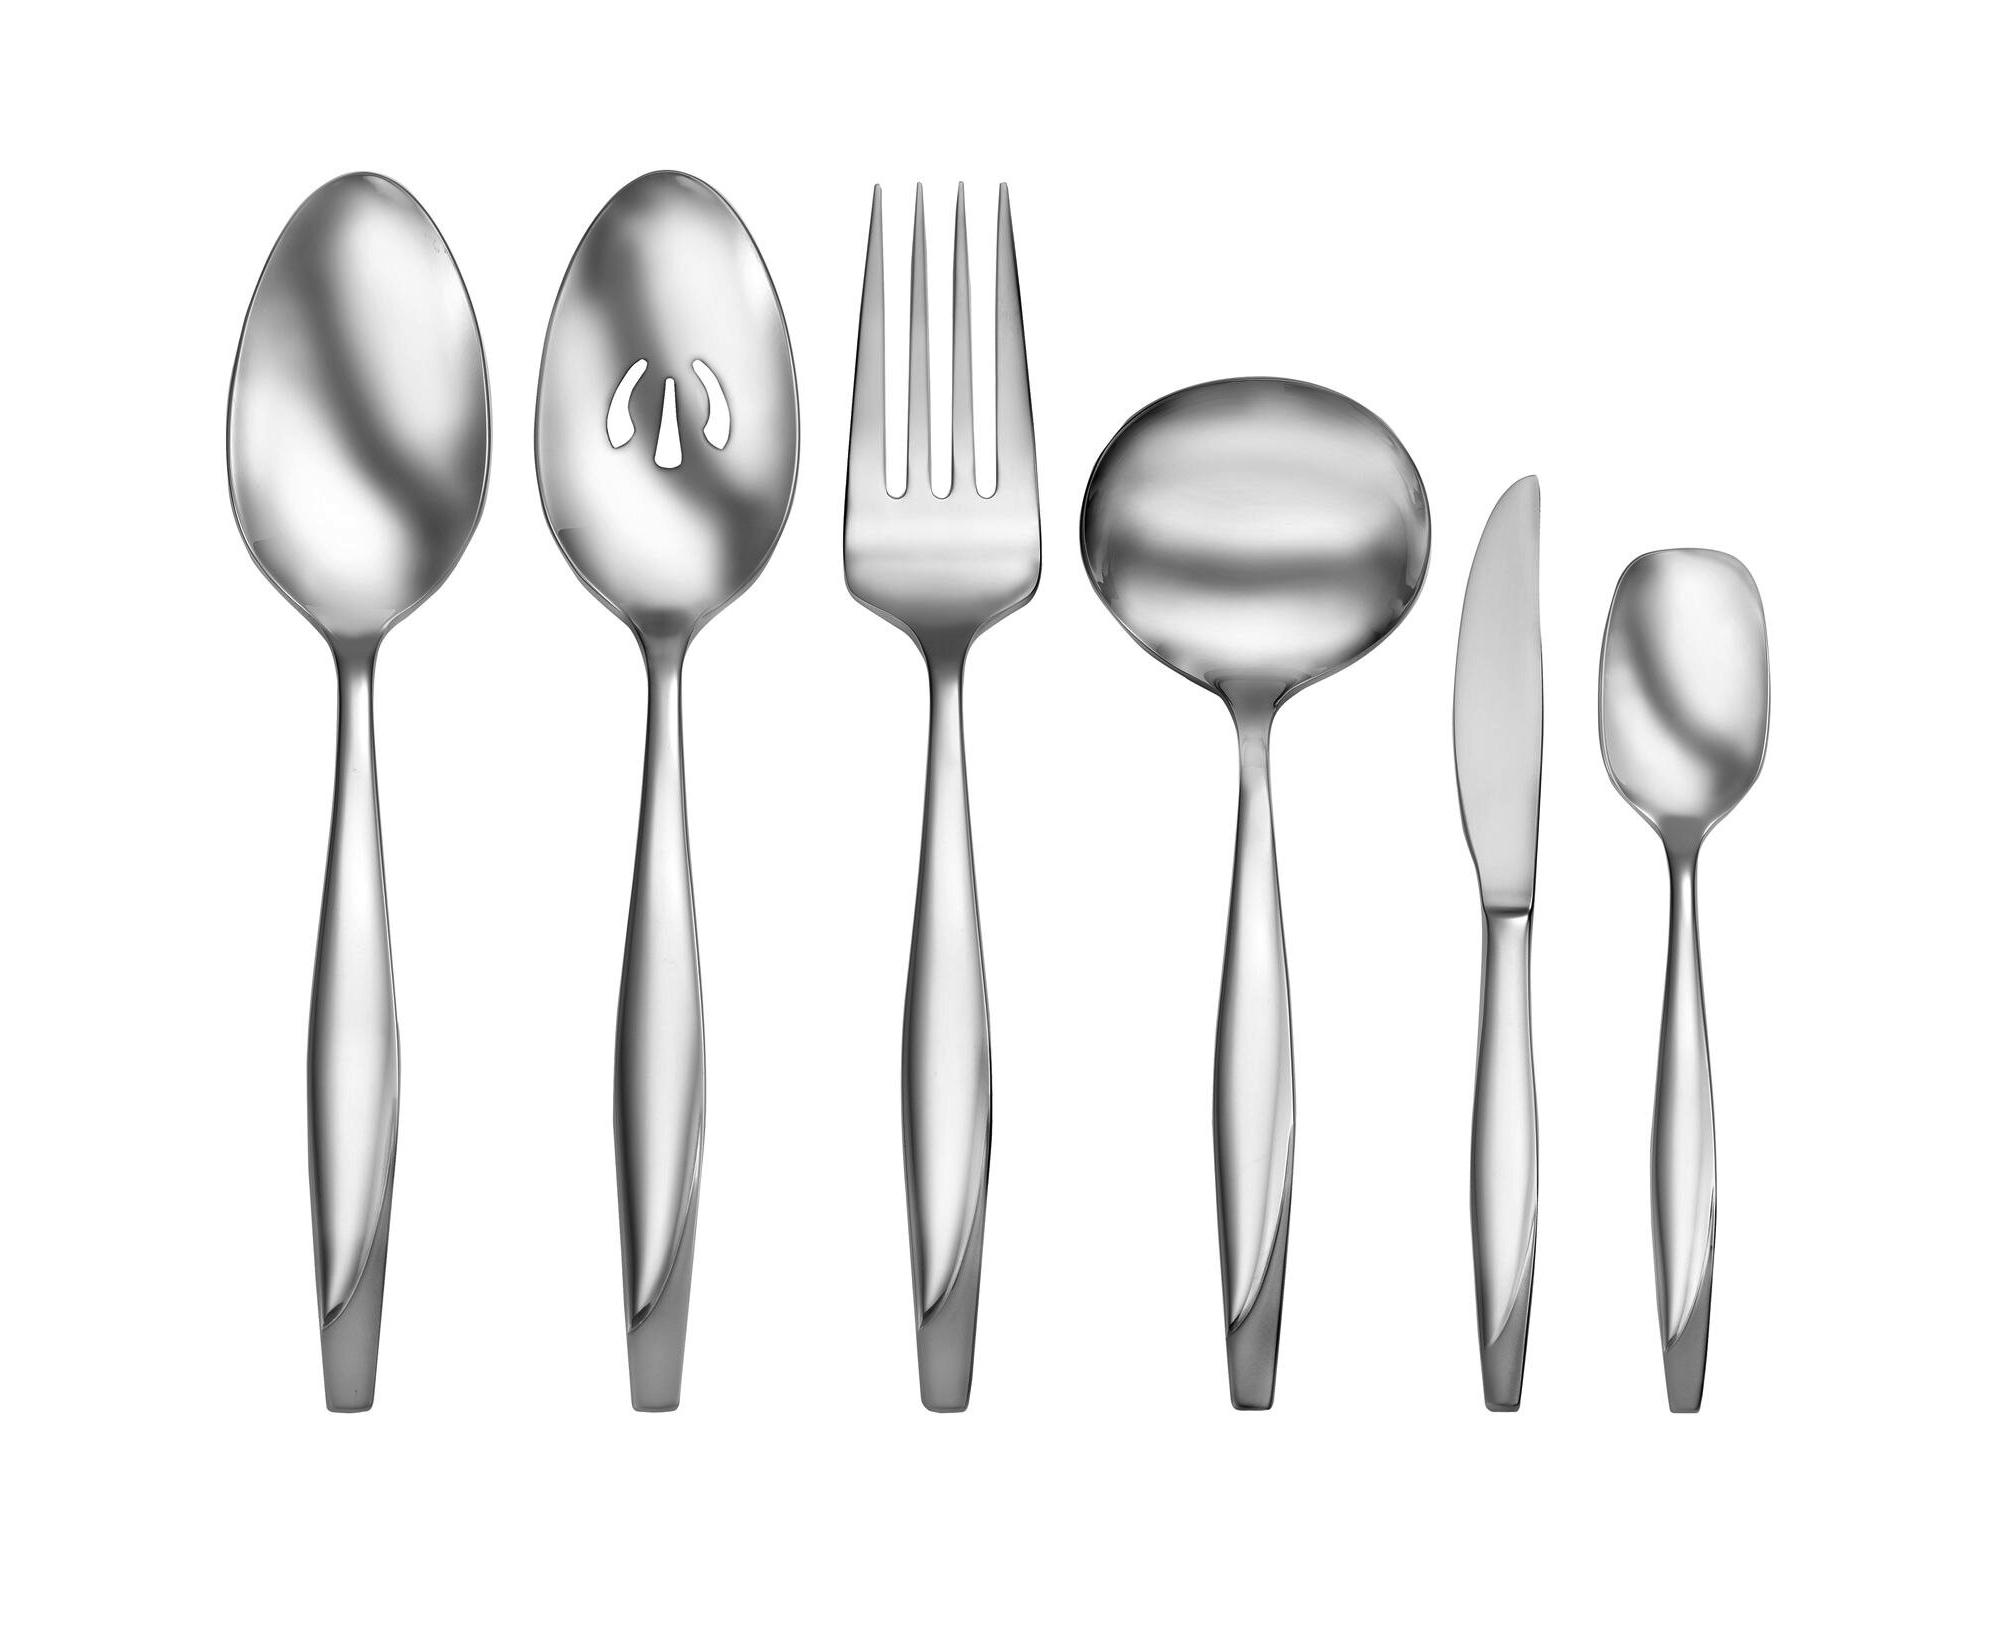 Heart Black and White 6 inch Ceramic Stoneware Flatware Serving Spoons Set of 6